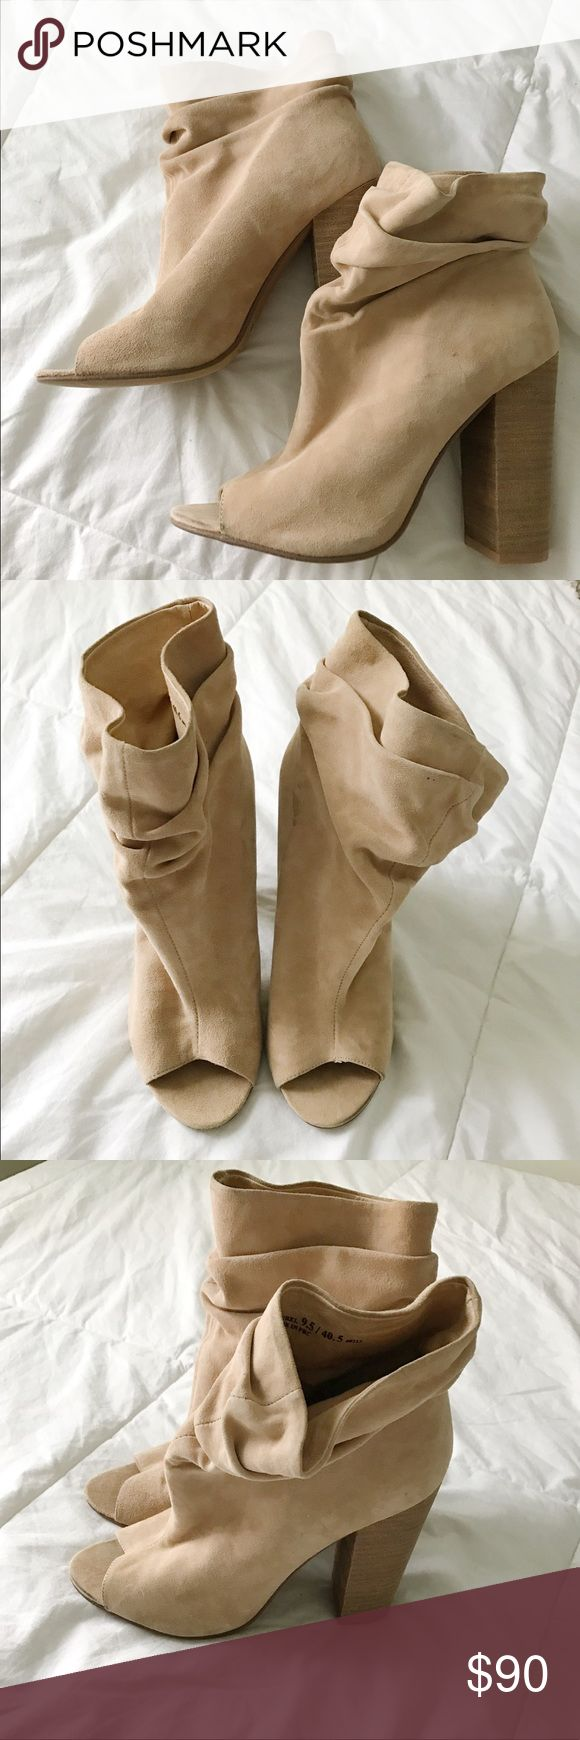 Shoes Brand new Kristin cavalari pumps!! Gorgeous shoe, never worn before kristin cavallari Shoes Ankle Boots & Booties